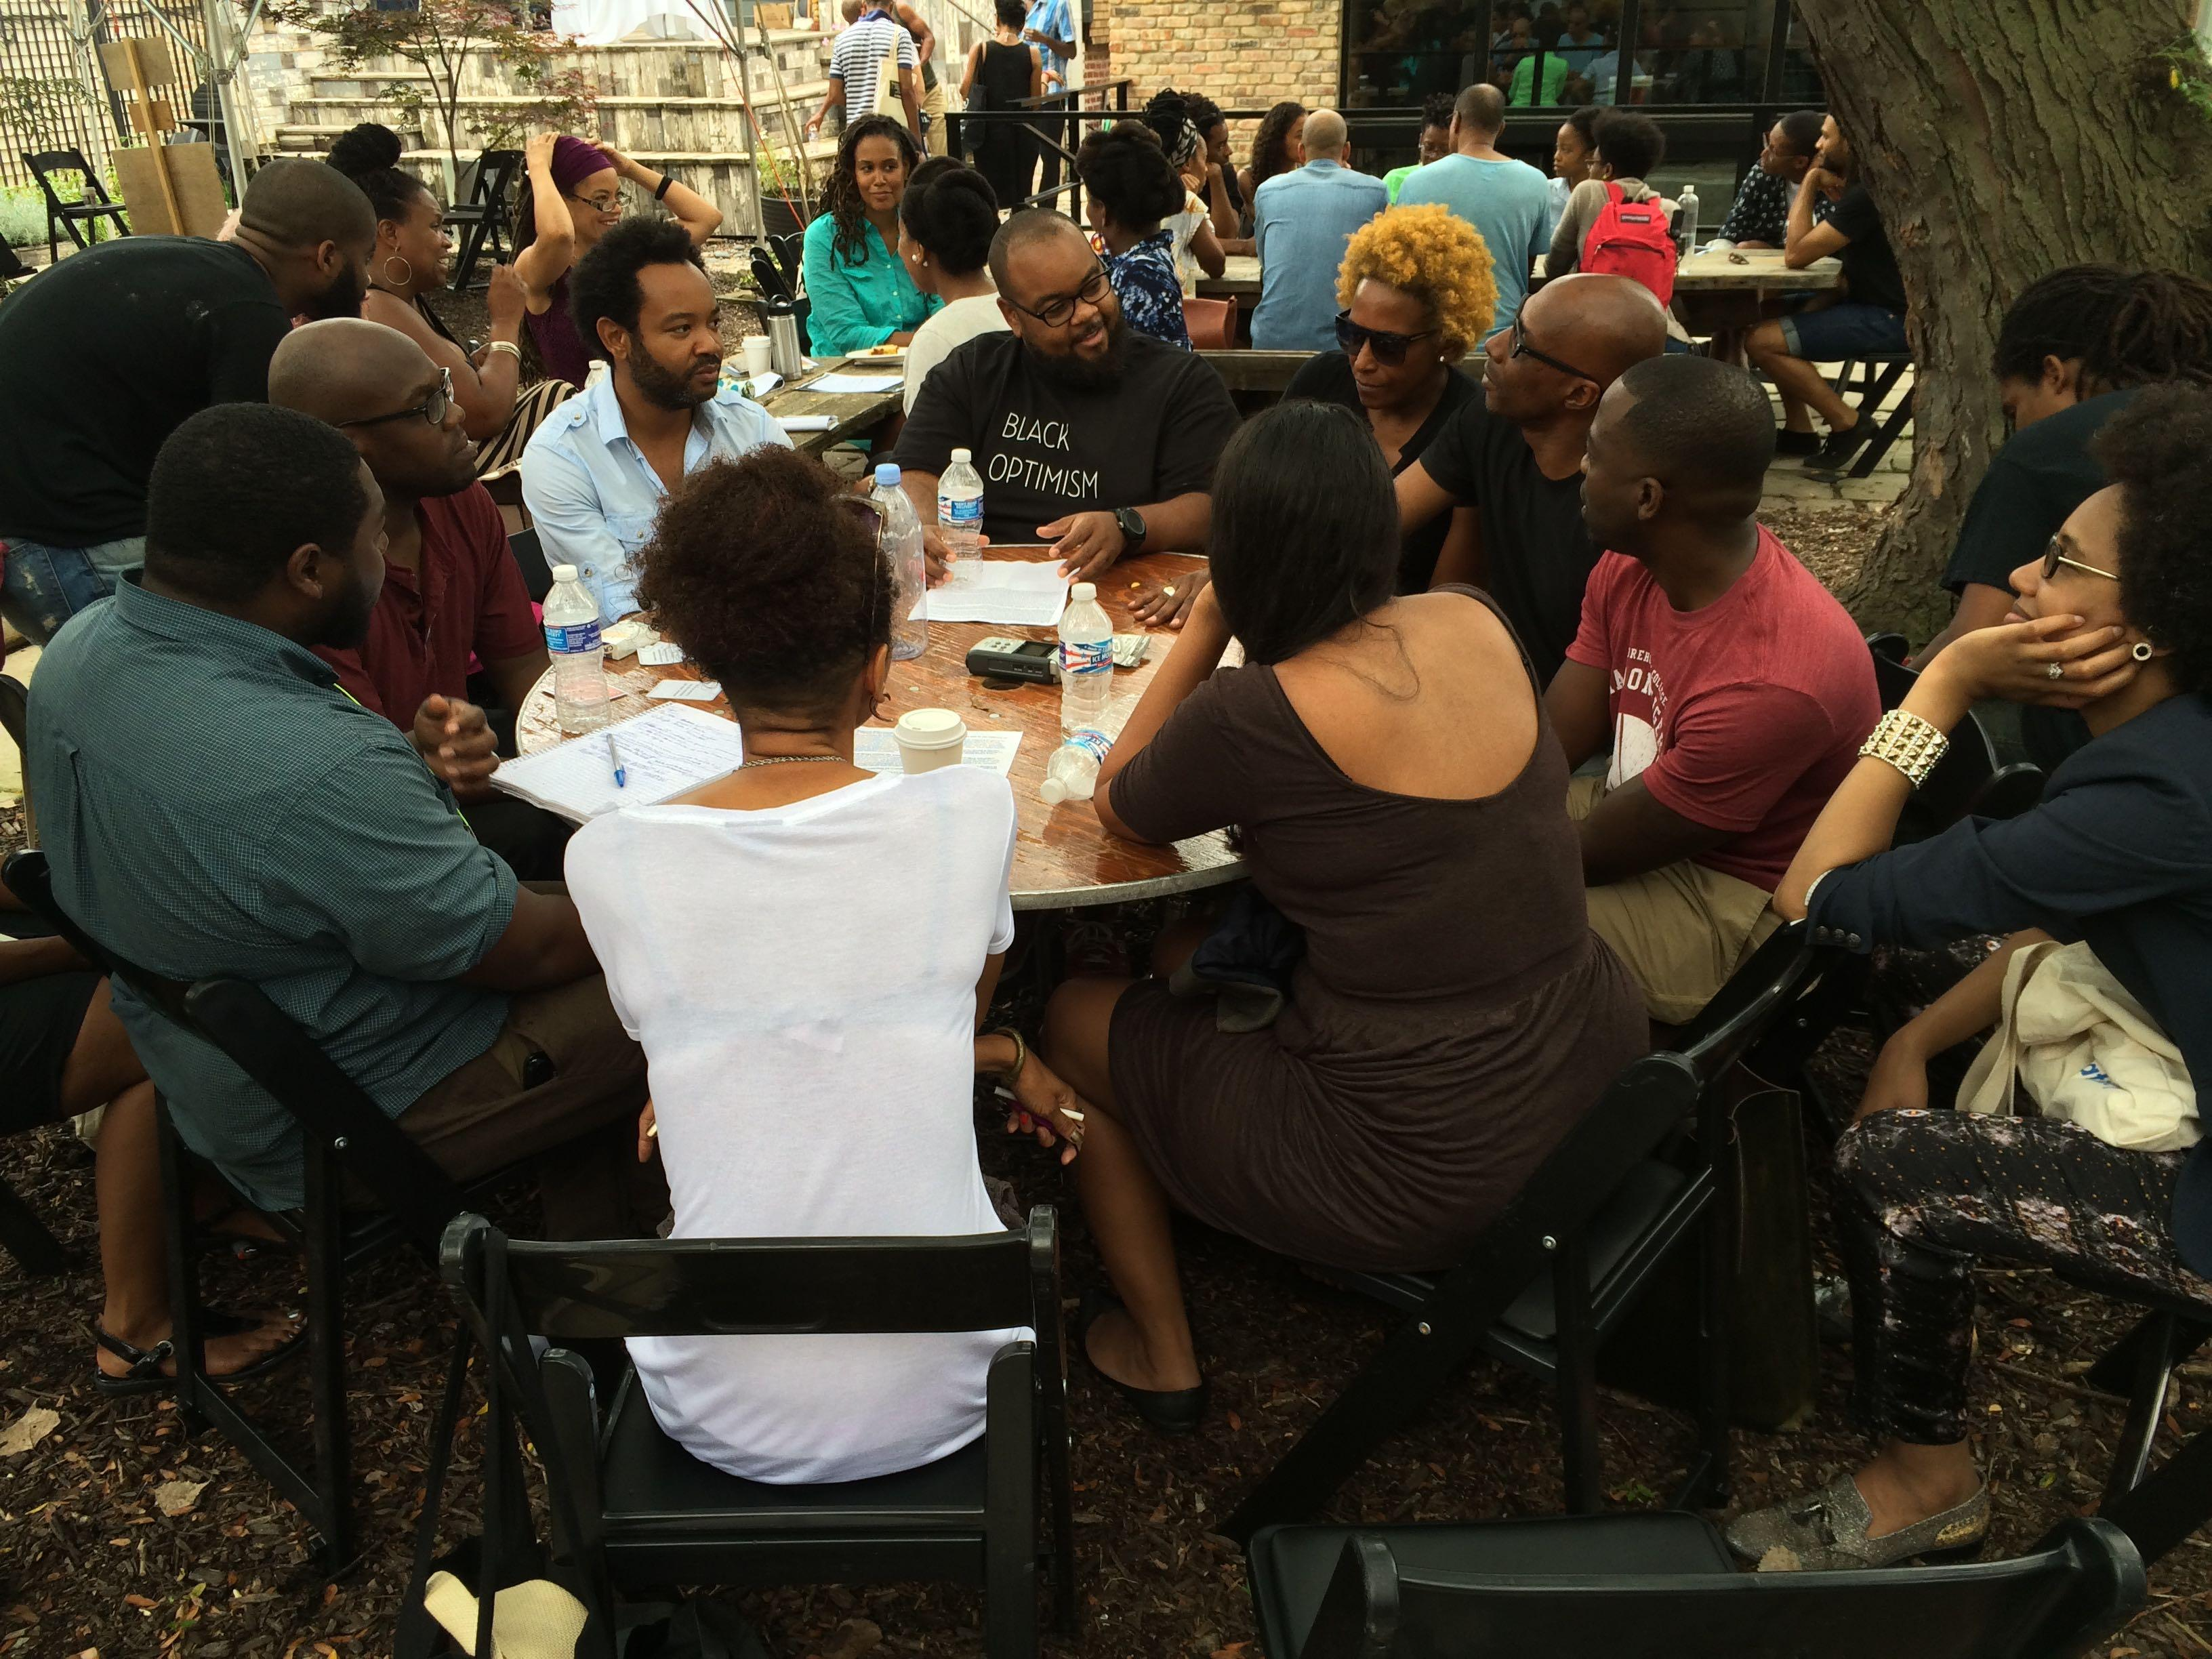 A group of dark-skinned people sit talking around a table outdoors, with other tables of people visible in the background.